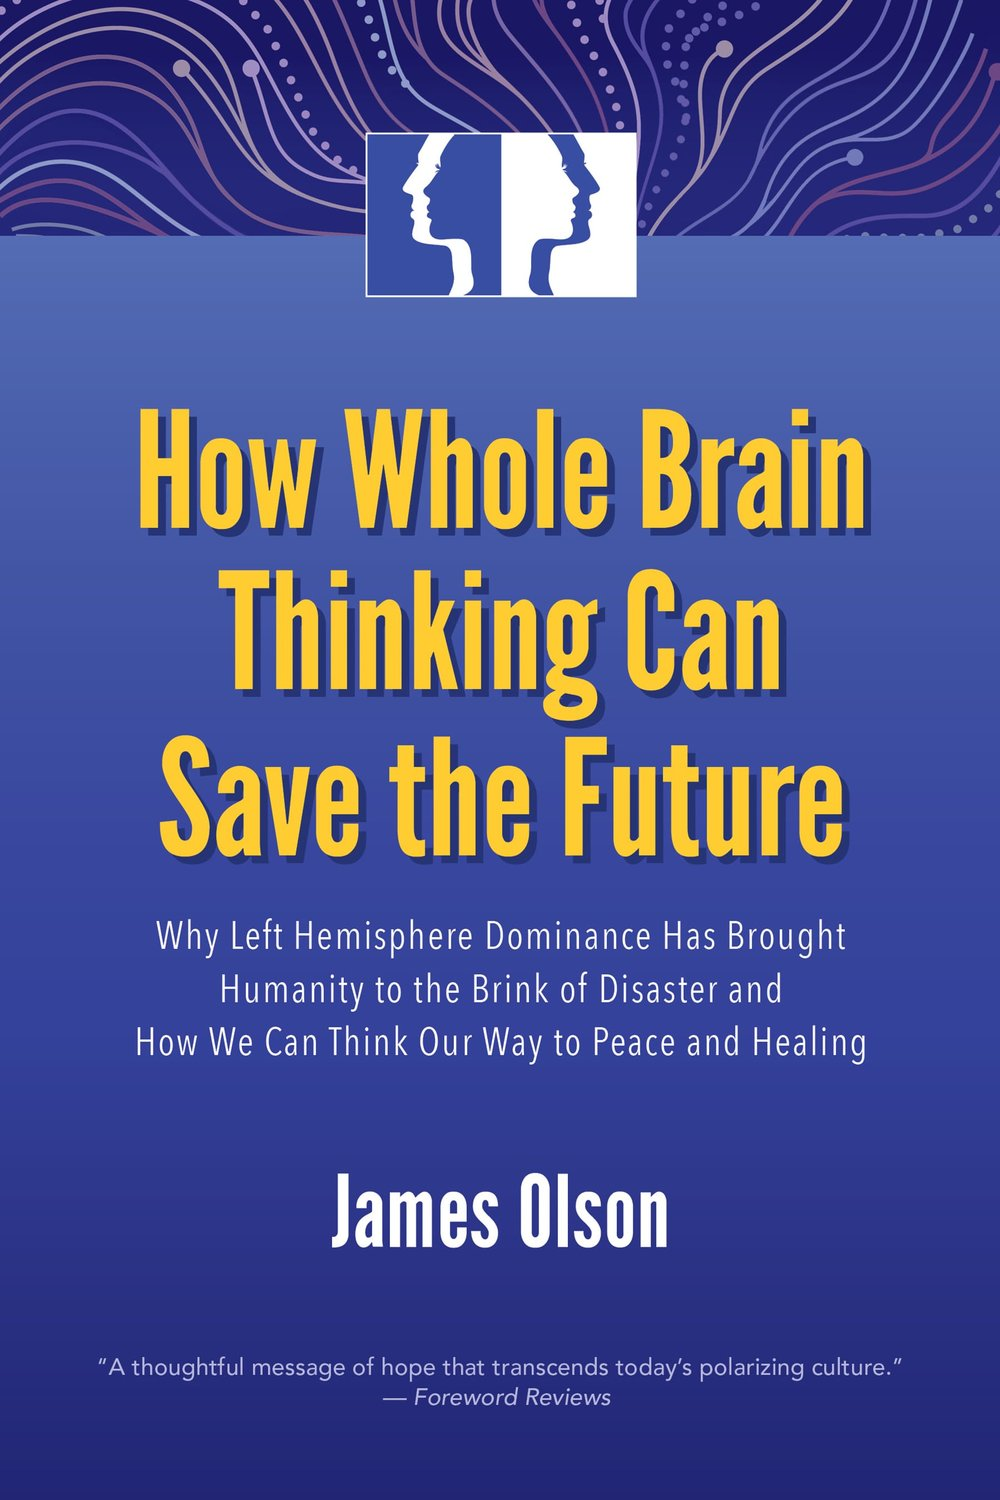 How+Whole+Brain+Thinking+Can+Save+The+Future+Cover+Art-+James+Olson.jpeg